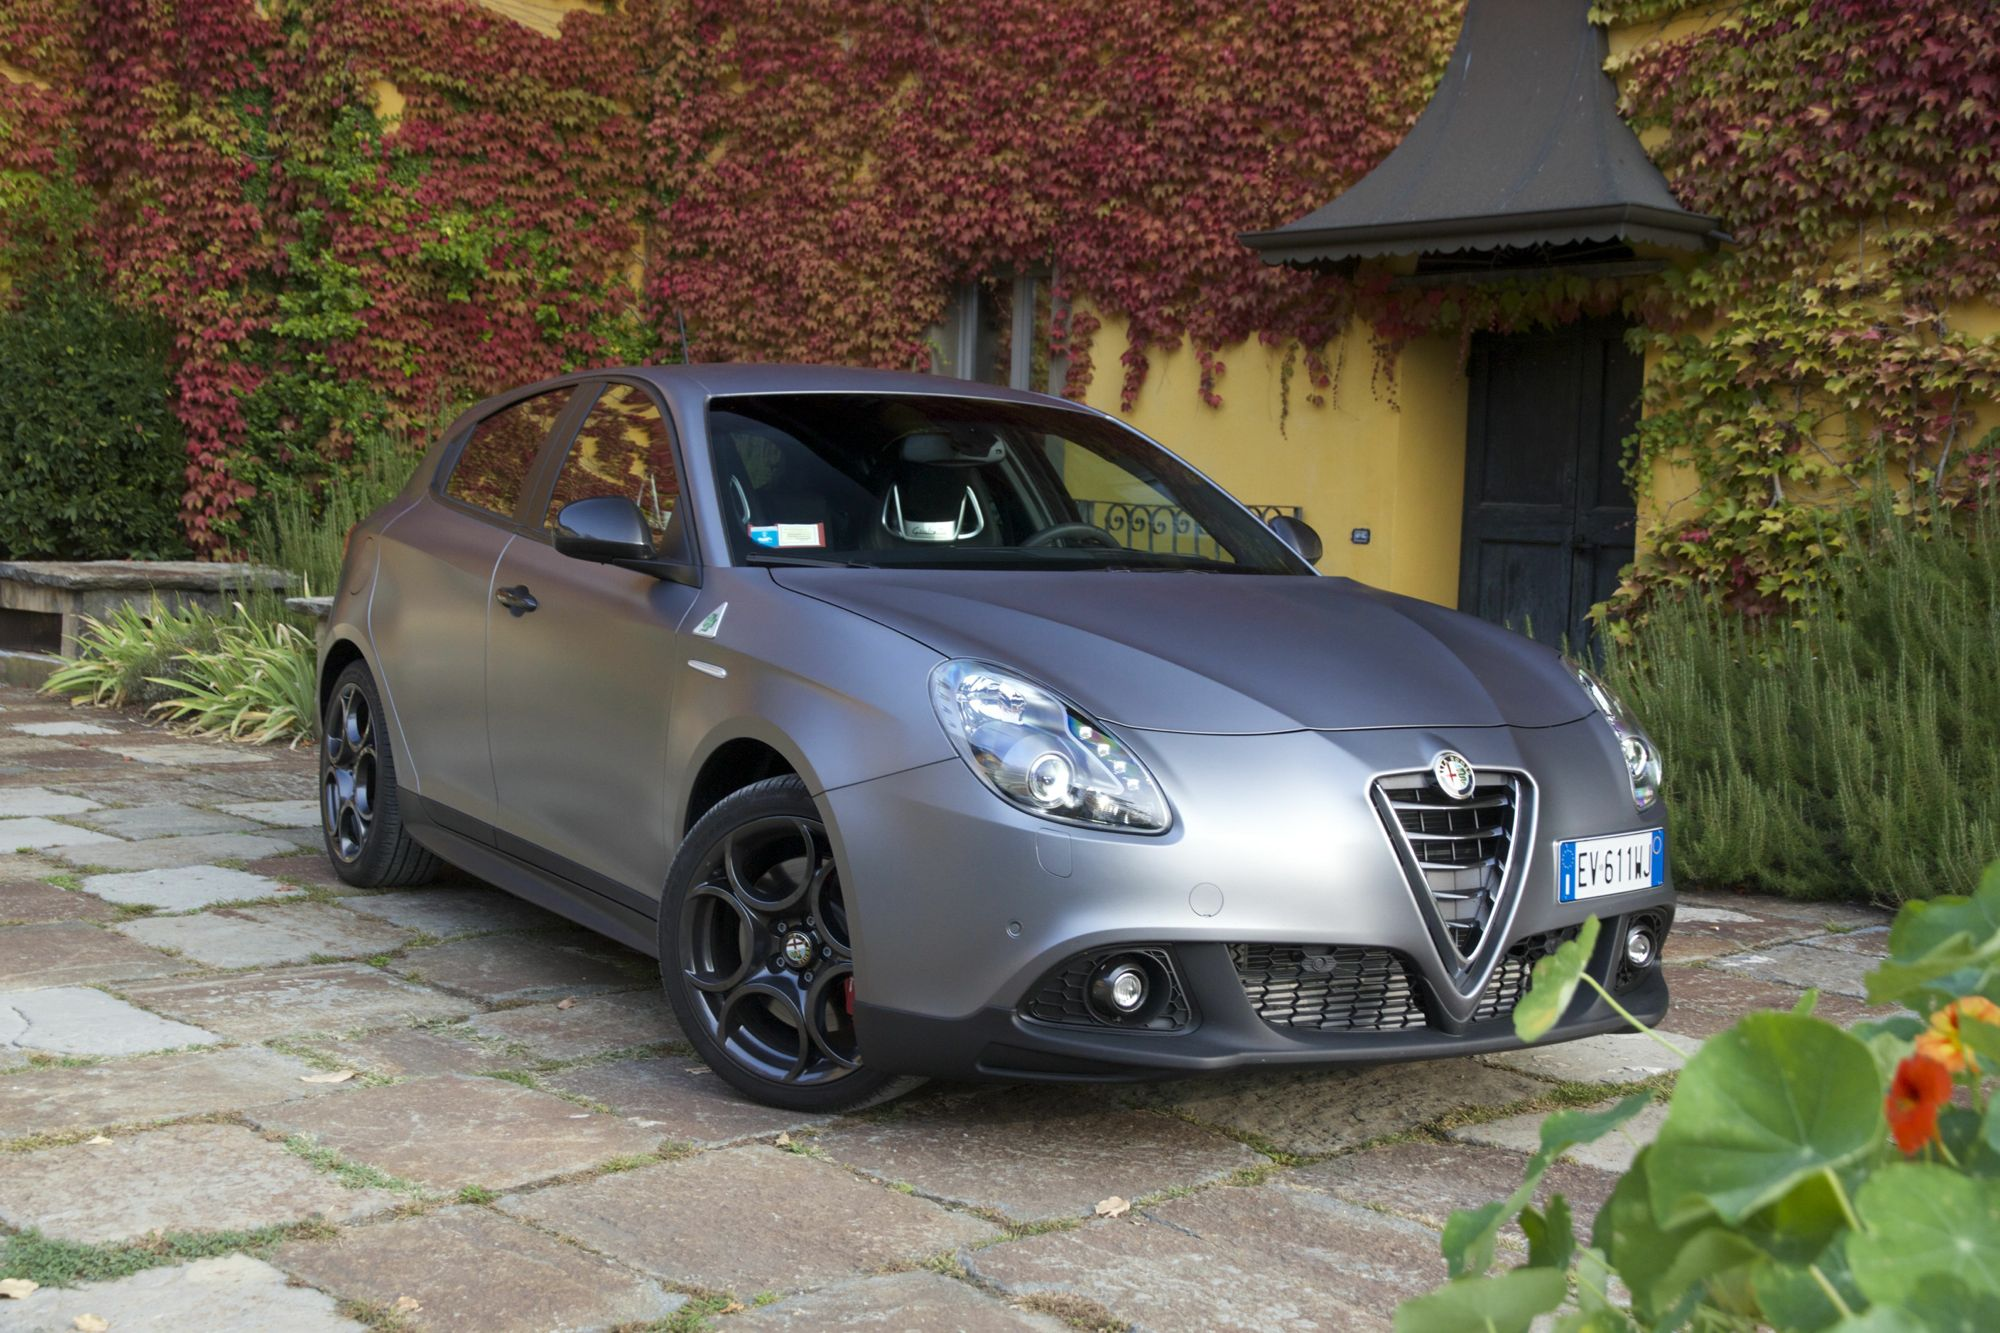 2015 alfa romeo giulietta reviews photos video and price autos post. Black Bedroom Furniture Sets. Home Design Ideas